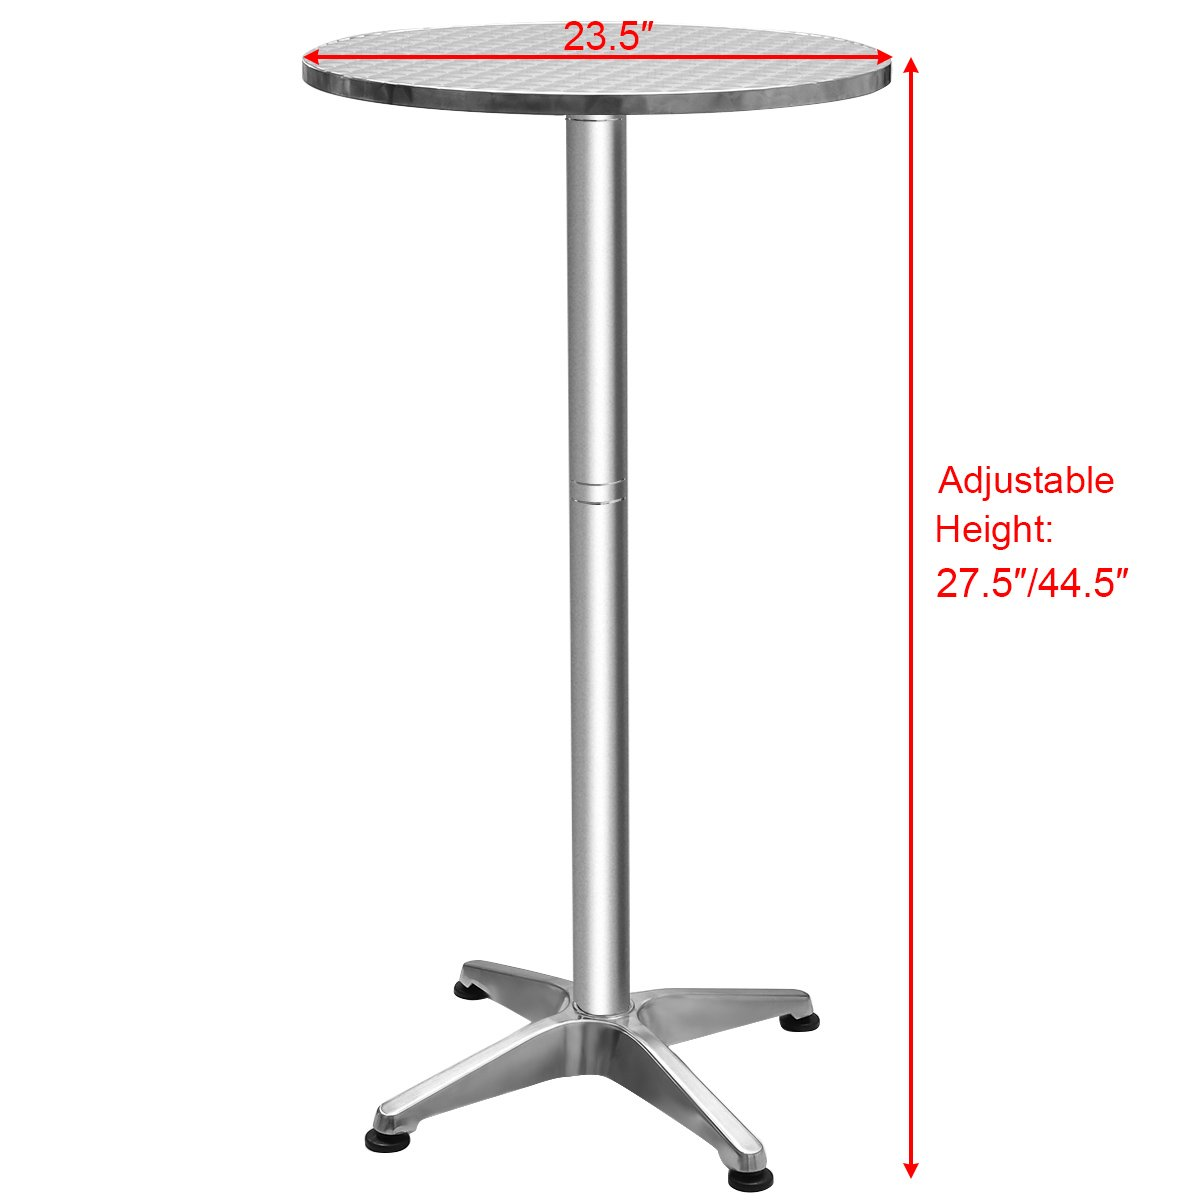 Giantex Bistro Bar Table Aluminium Round Folding Table W/Two Height Adjust  Table   Round Aluminum Bistro Bar Table U003c Bar Tables U003c Patio, Lawn U0026 Garden    ...